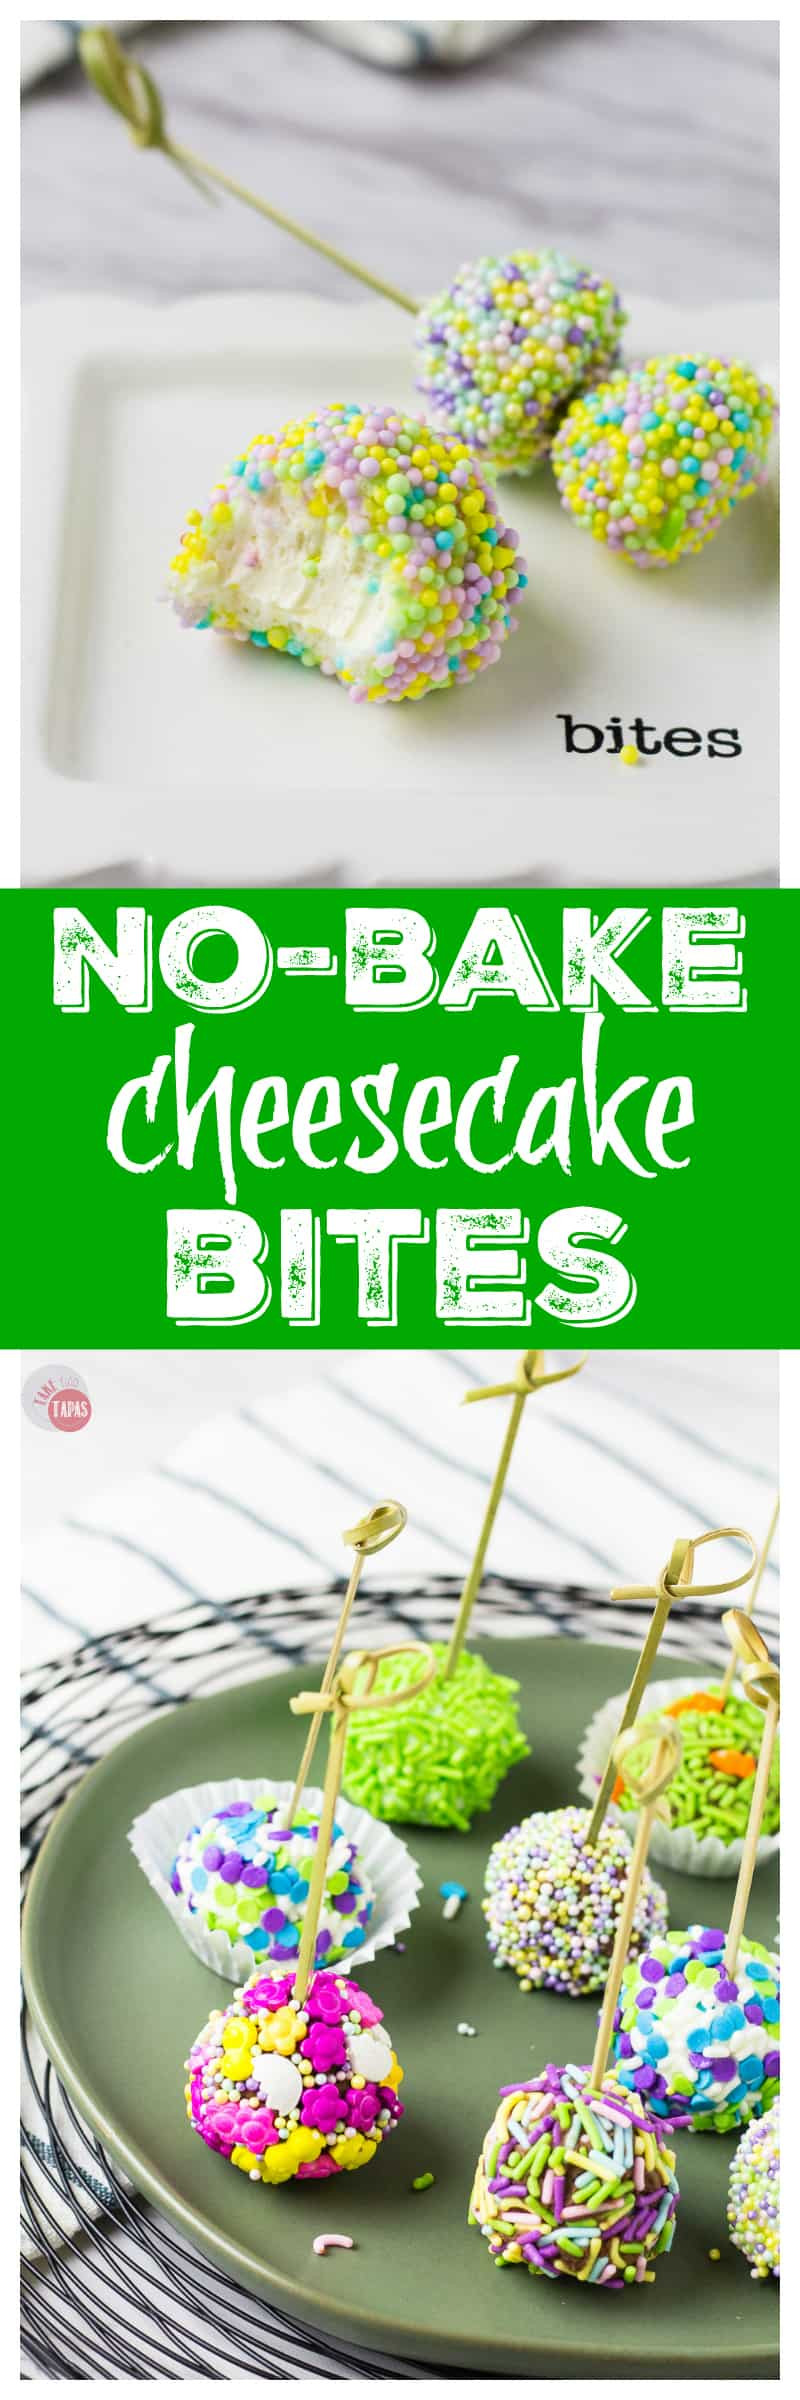 Spring Cheesecake No Bake Easy No Bake Cheesecake Bites for Spring Perfect for Easter